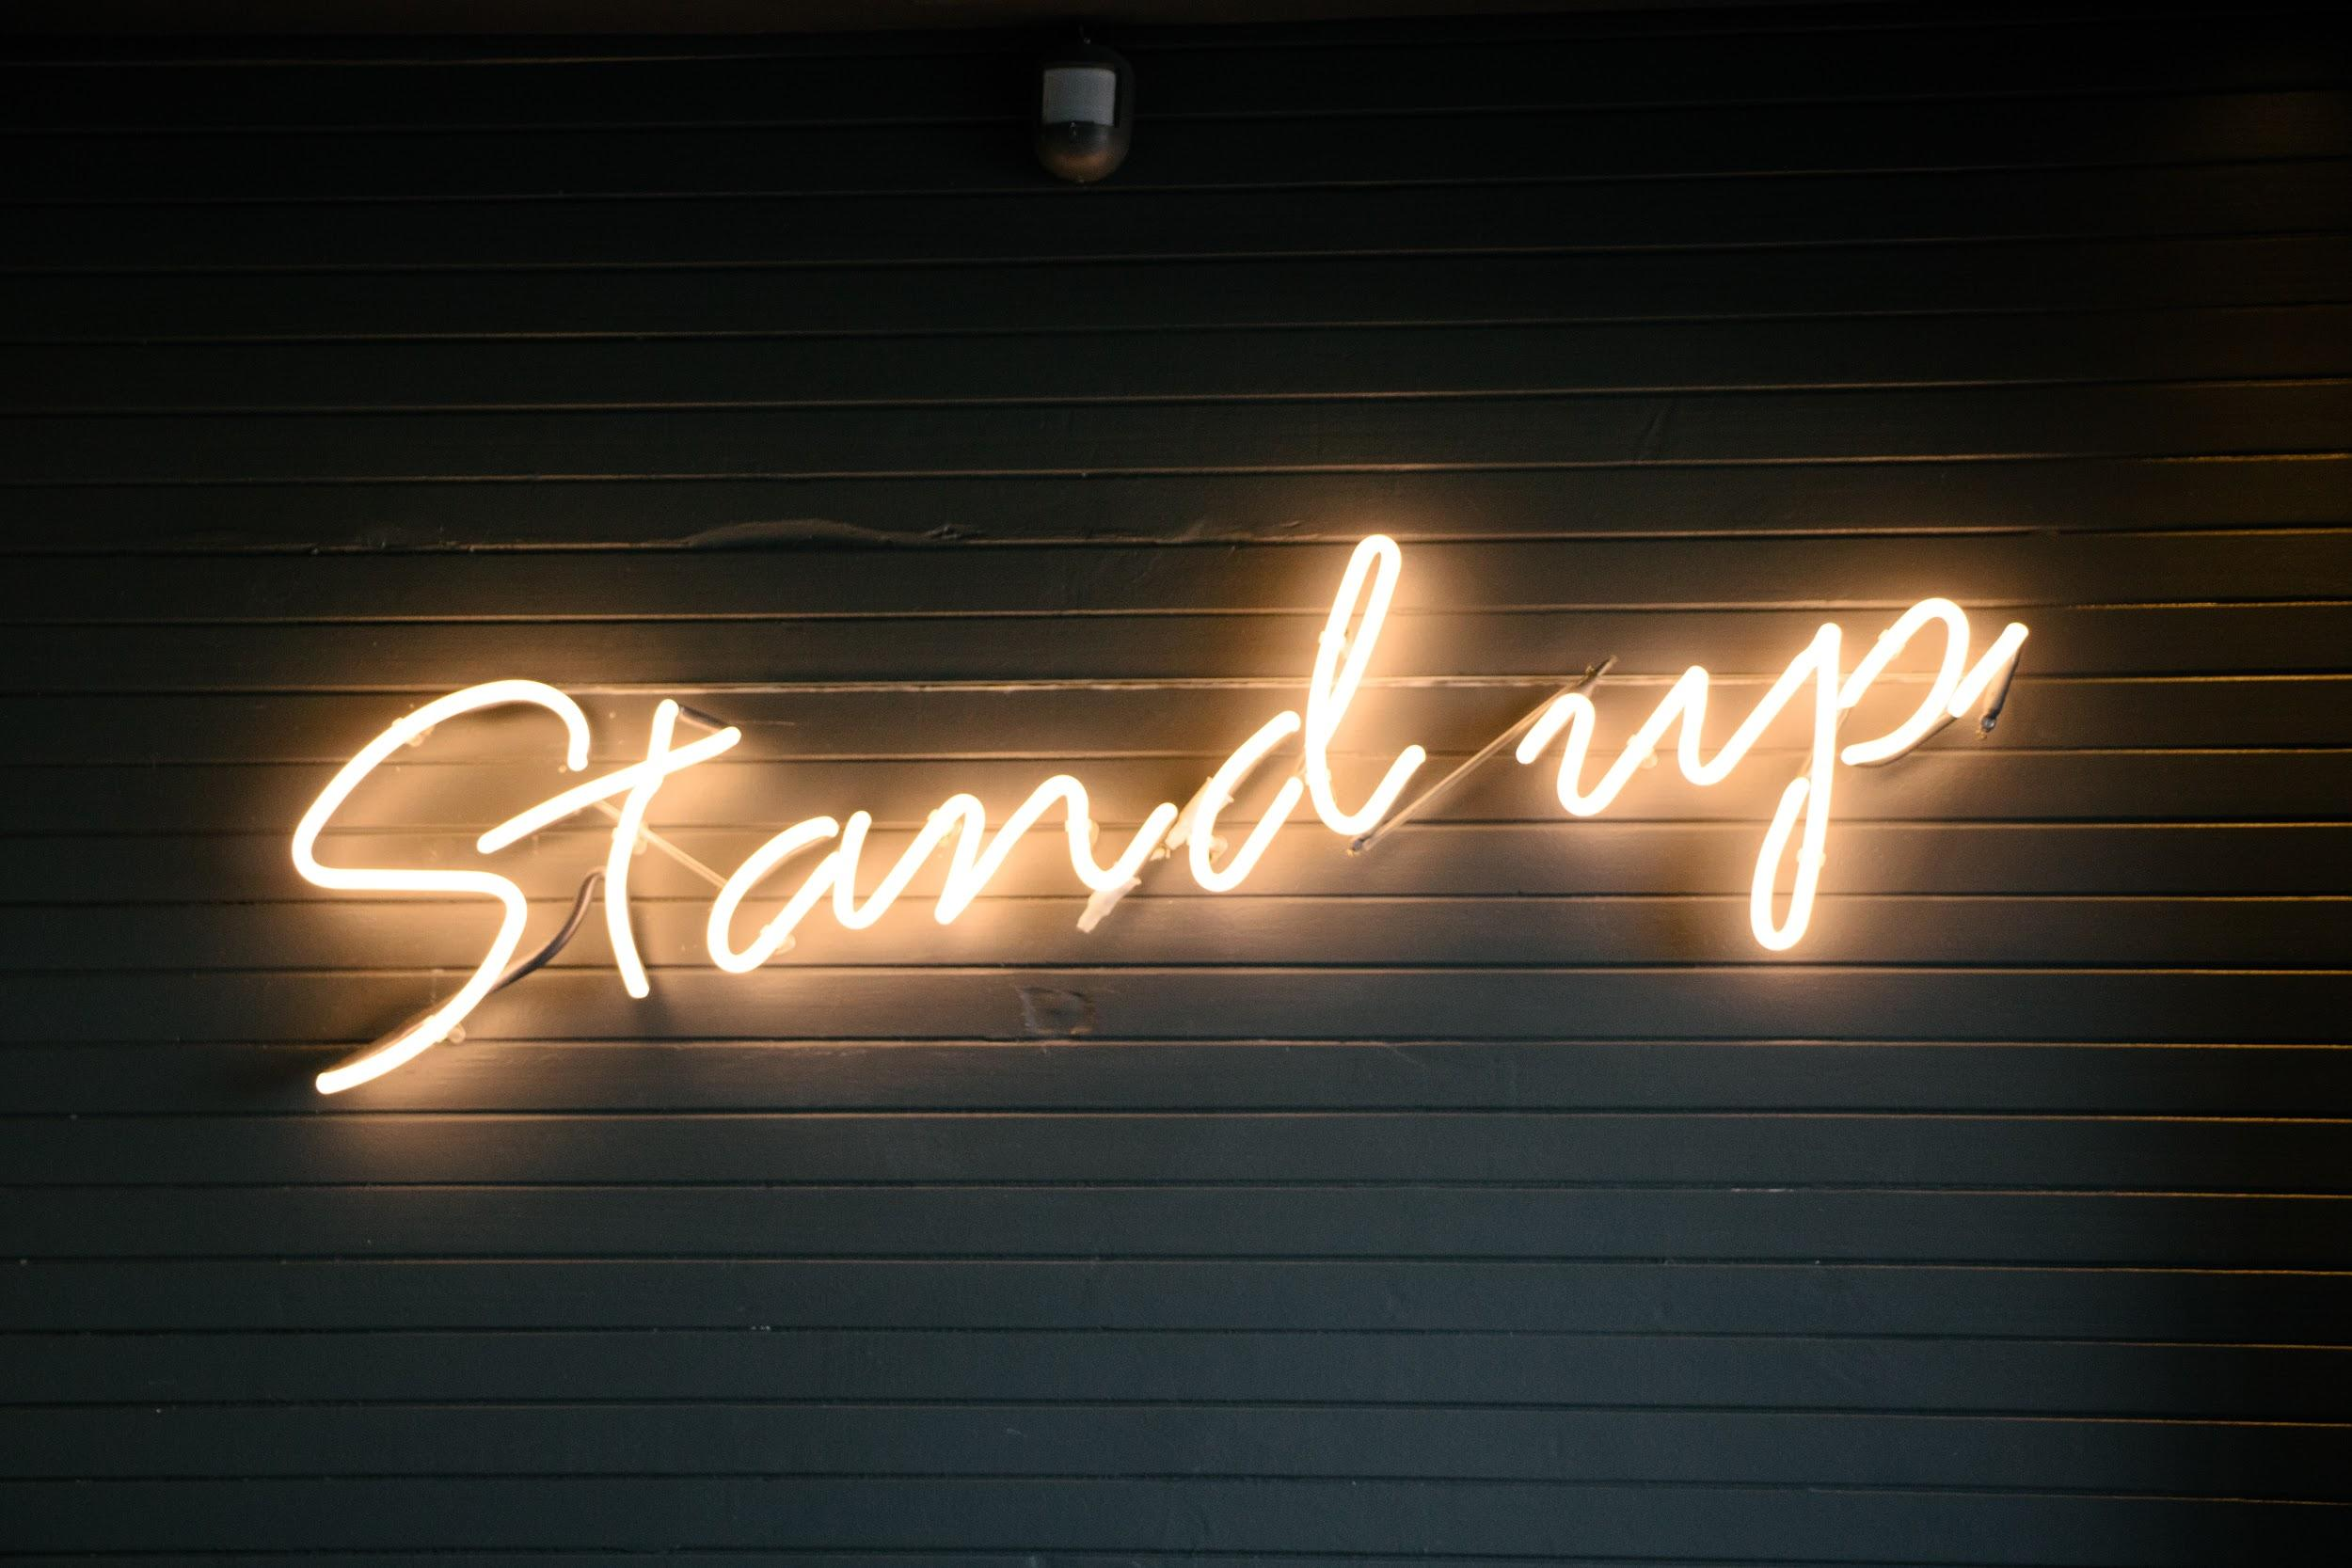 Stand up glowing, neon sign